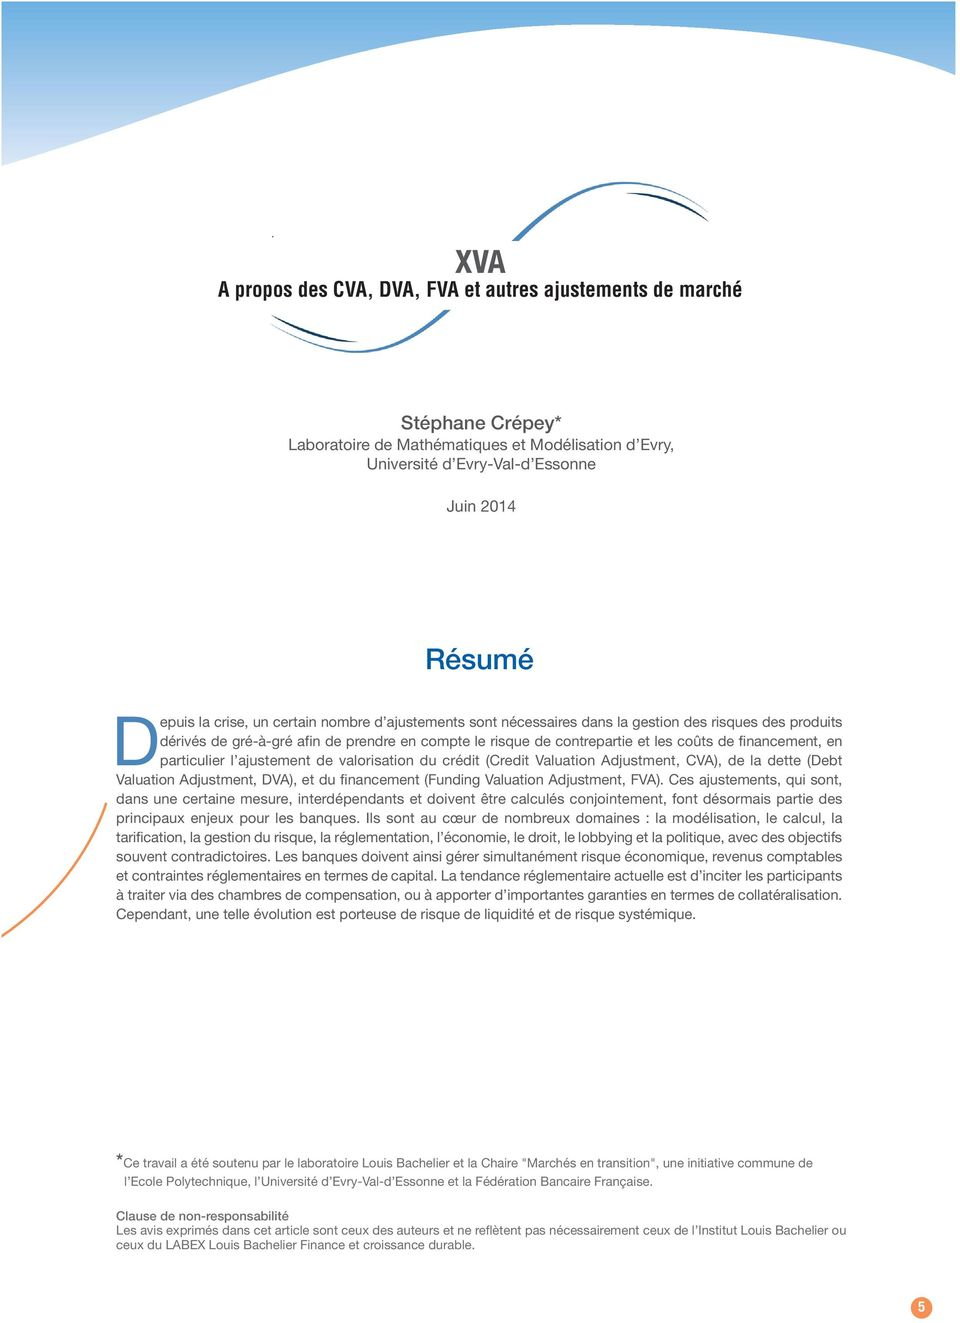 particulier l ajustement de valorisation du crédit (Credit Valuation Adjustment, CVA), de la dette (Debt Valuation Adjustment, DVA), et du financement (Funding Valuation Adjustment, FVA).